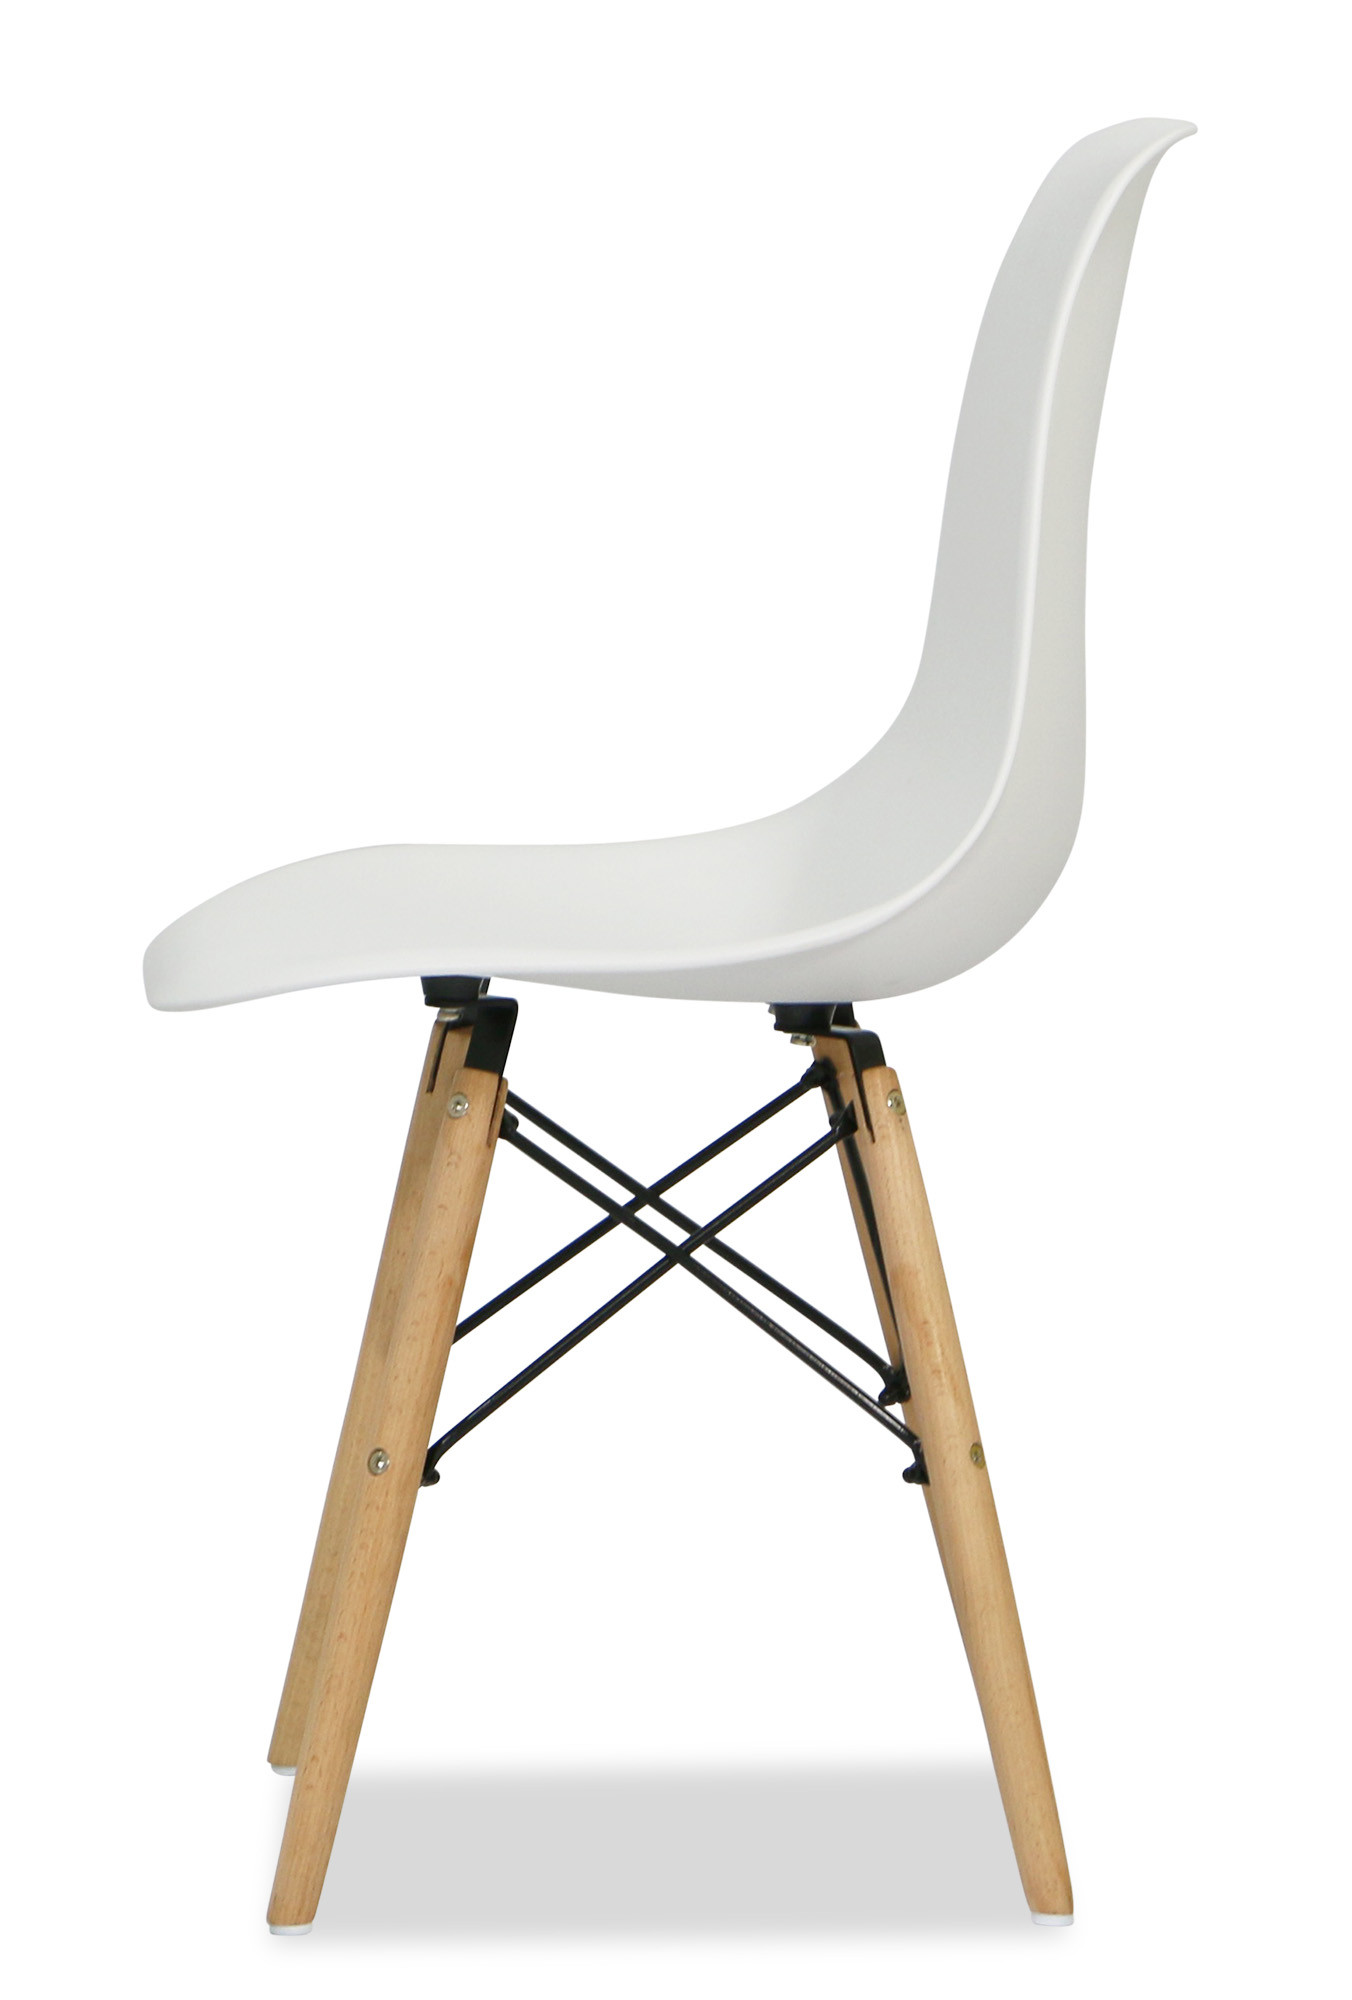 Designer Chair Eames White Replica Designer Chair Dining Room Furniture